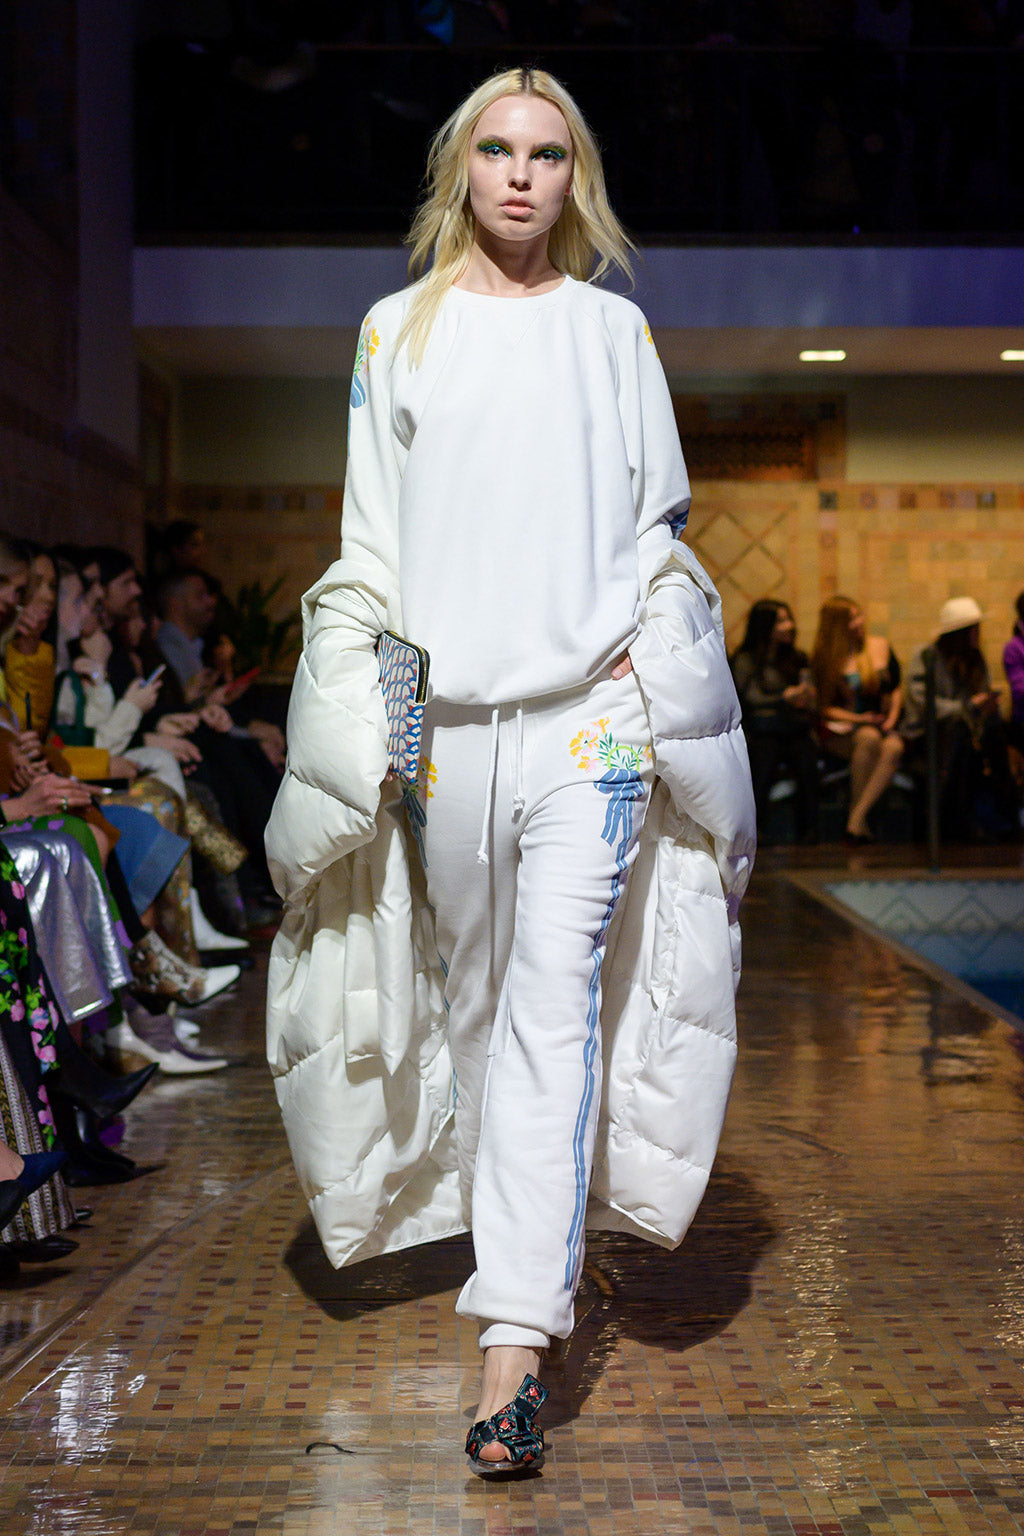 Cynthia Rowley Fall 2019 look 24 featuring a white sweater with floral applications and matching sweatpants with stripes on both sides